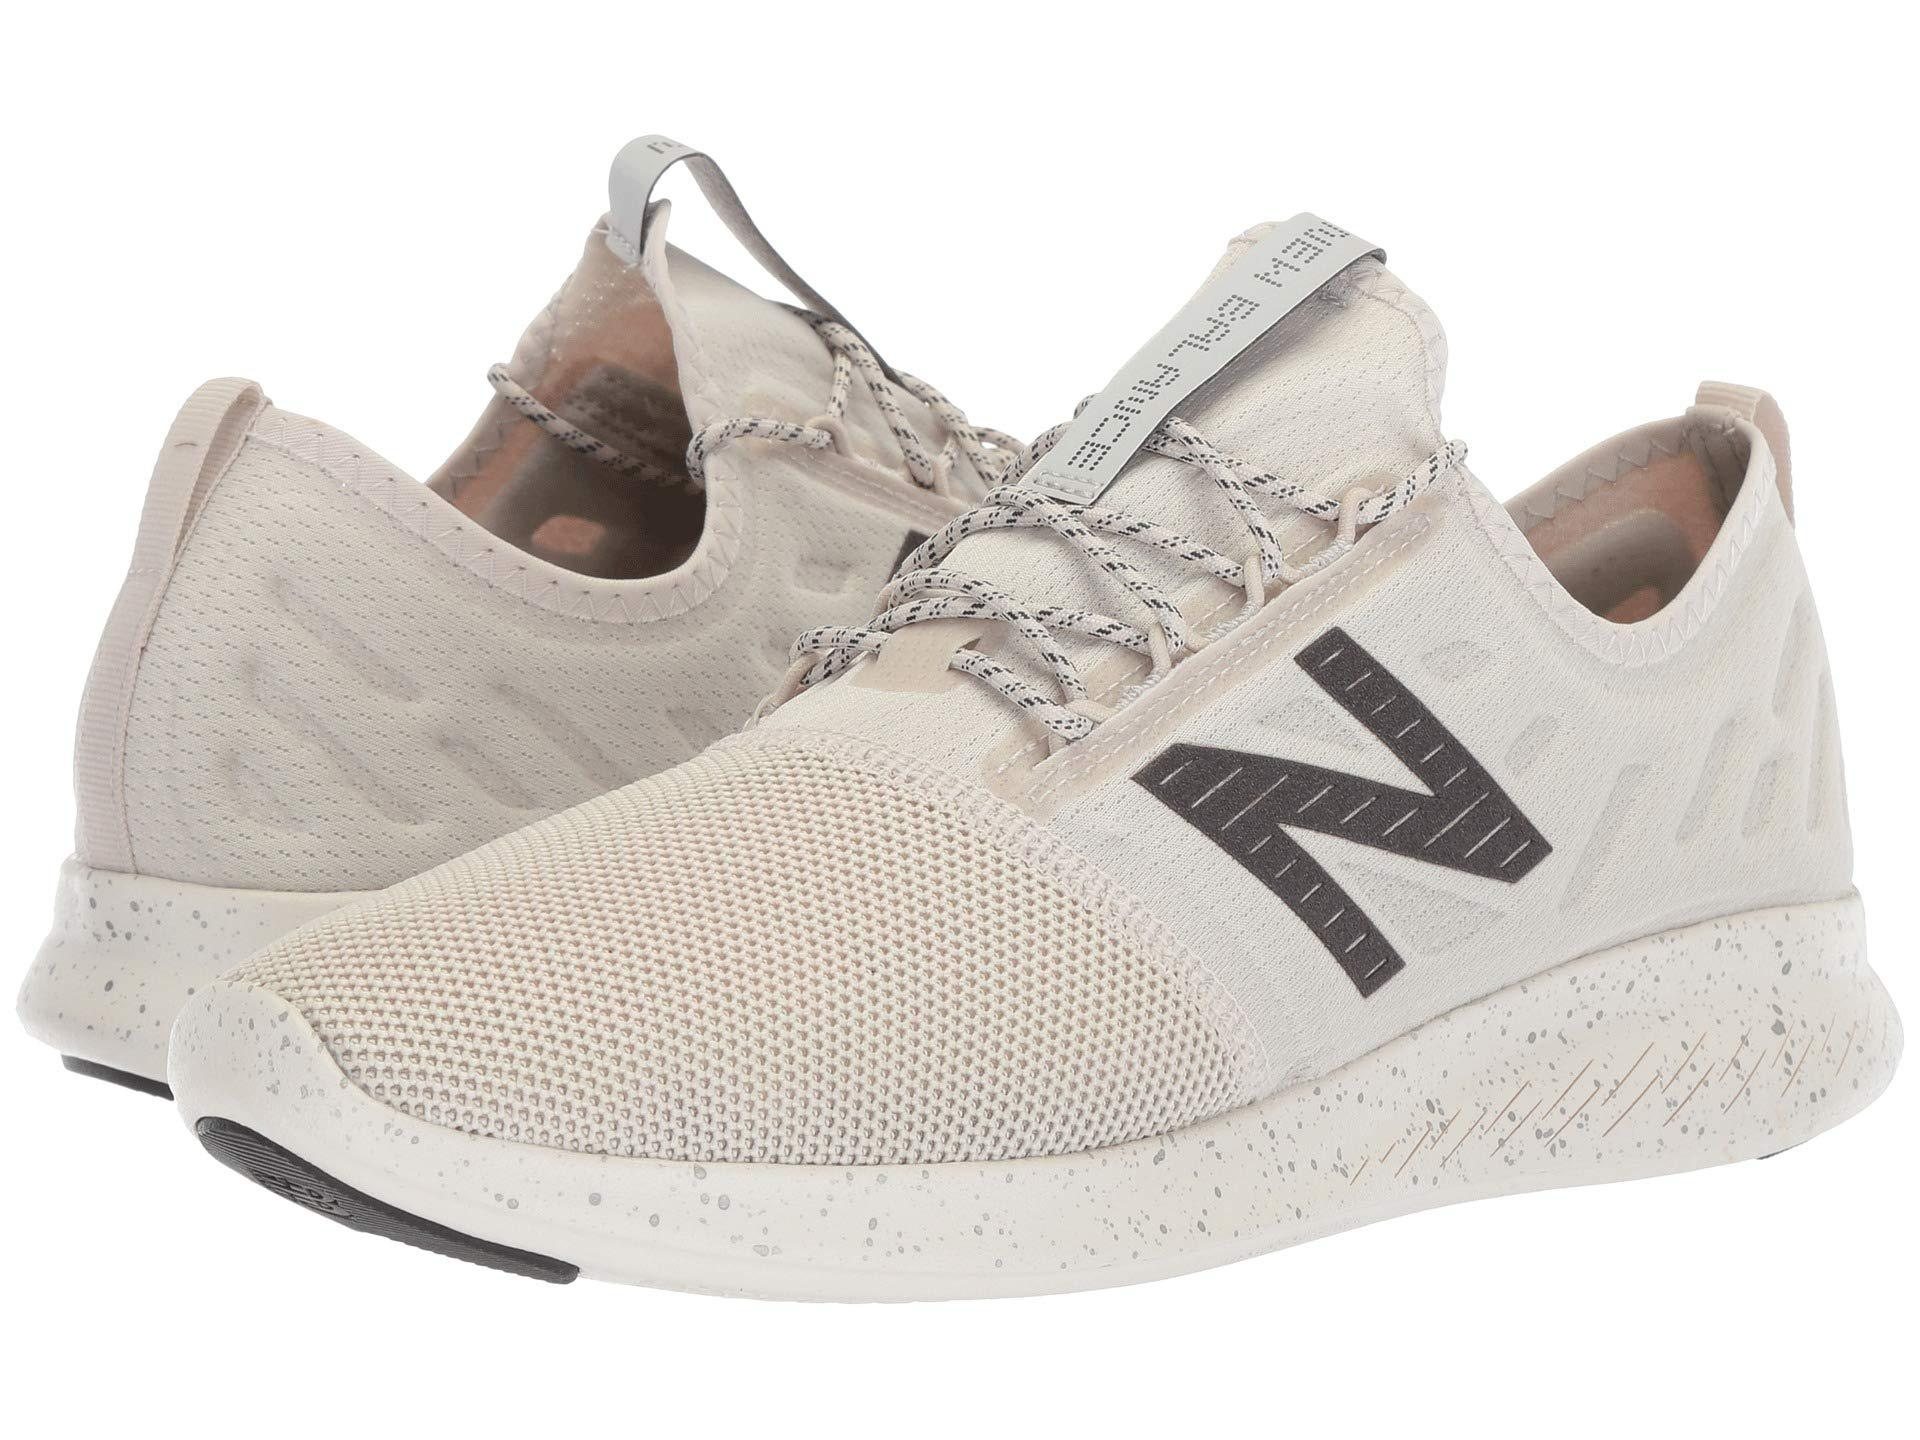 Lyst - New Balance Fuelcore Coast V4 City Stealth (moonbeam team ... d0f769a52